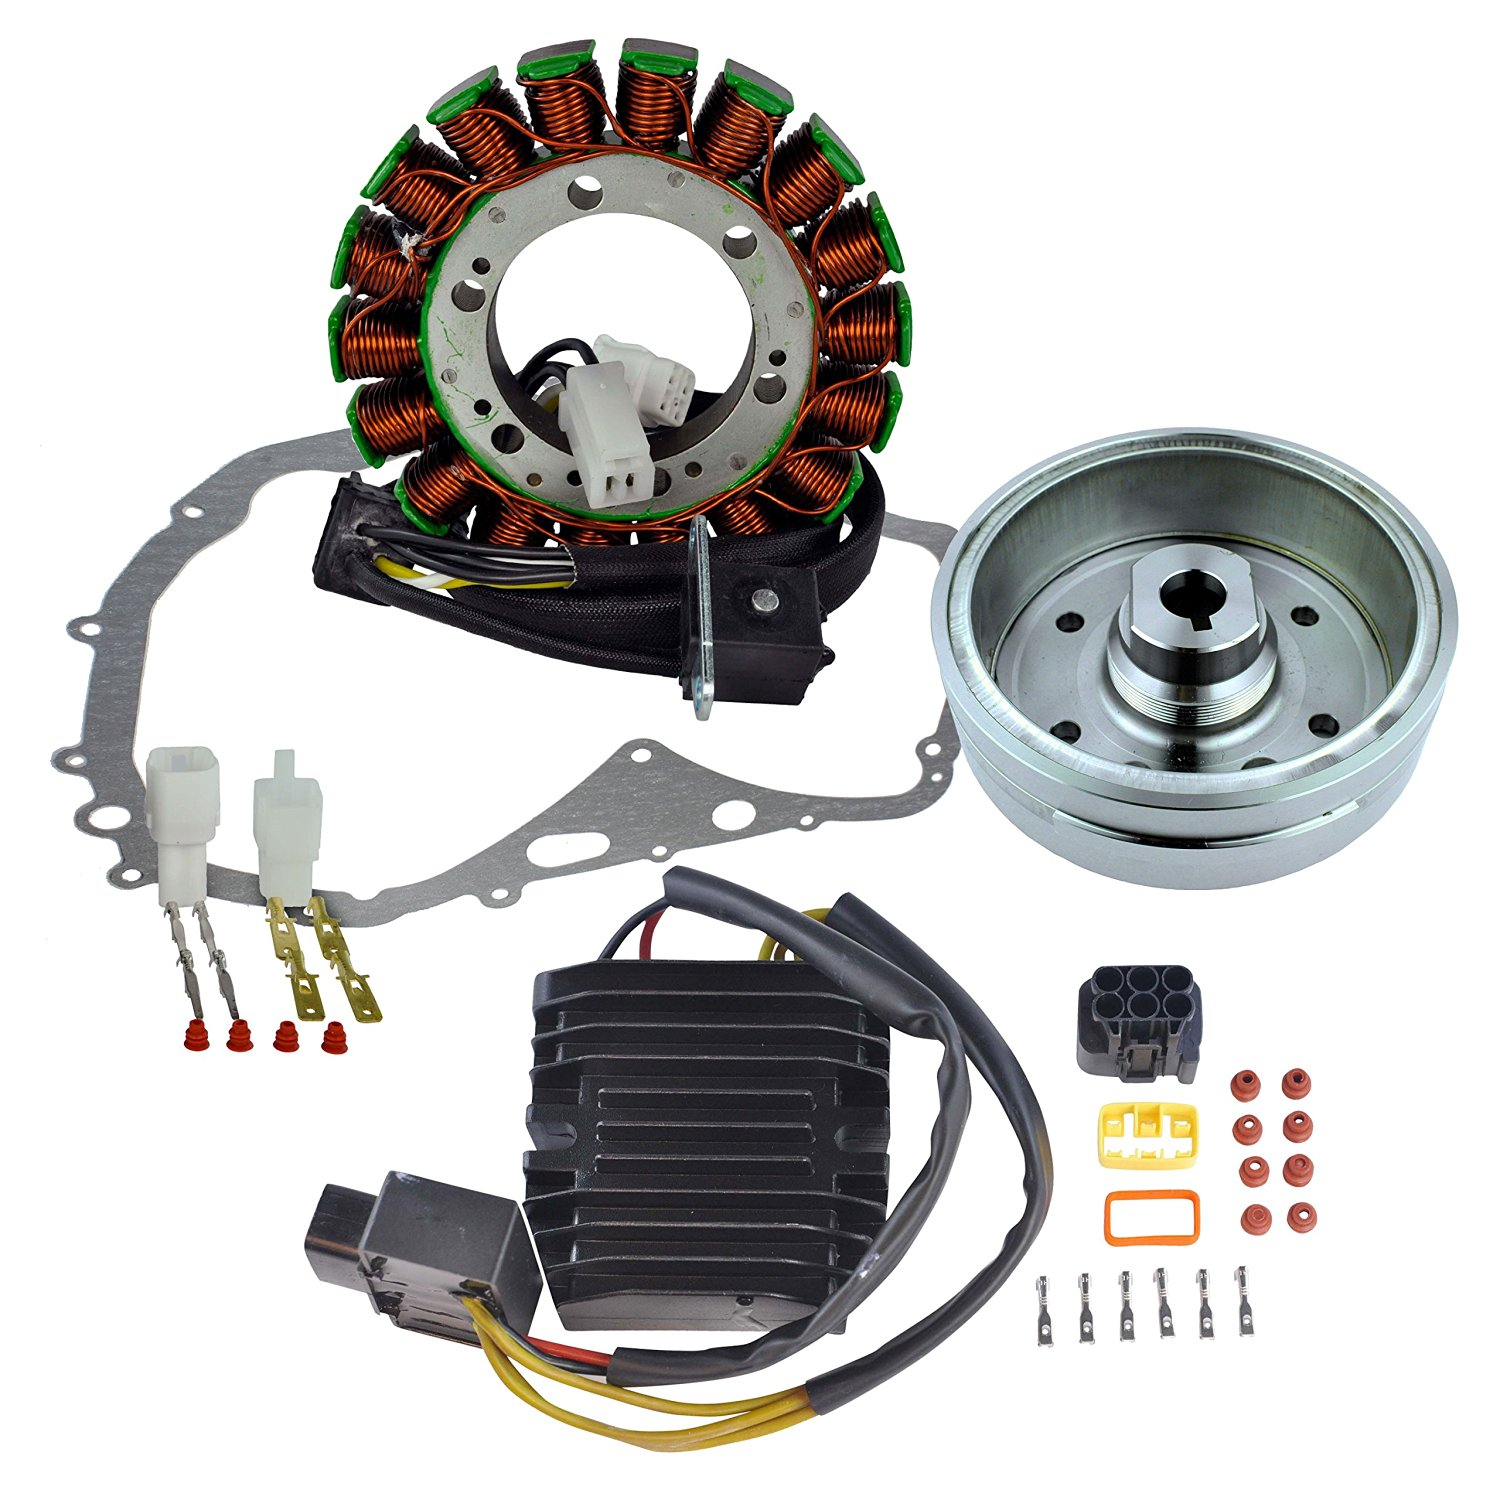 Kit Stator + Improved Flywheel + Mosfet Regulator Rectifier + Crankcase Cover Gasket For Suzuki LTF 400 Eiger 2002 2003 2004 2005 2006 2007